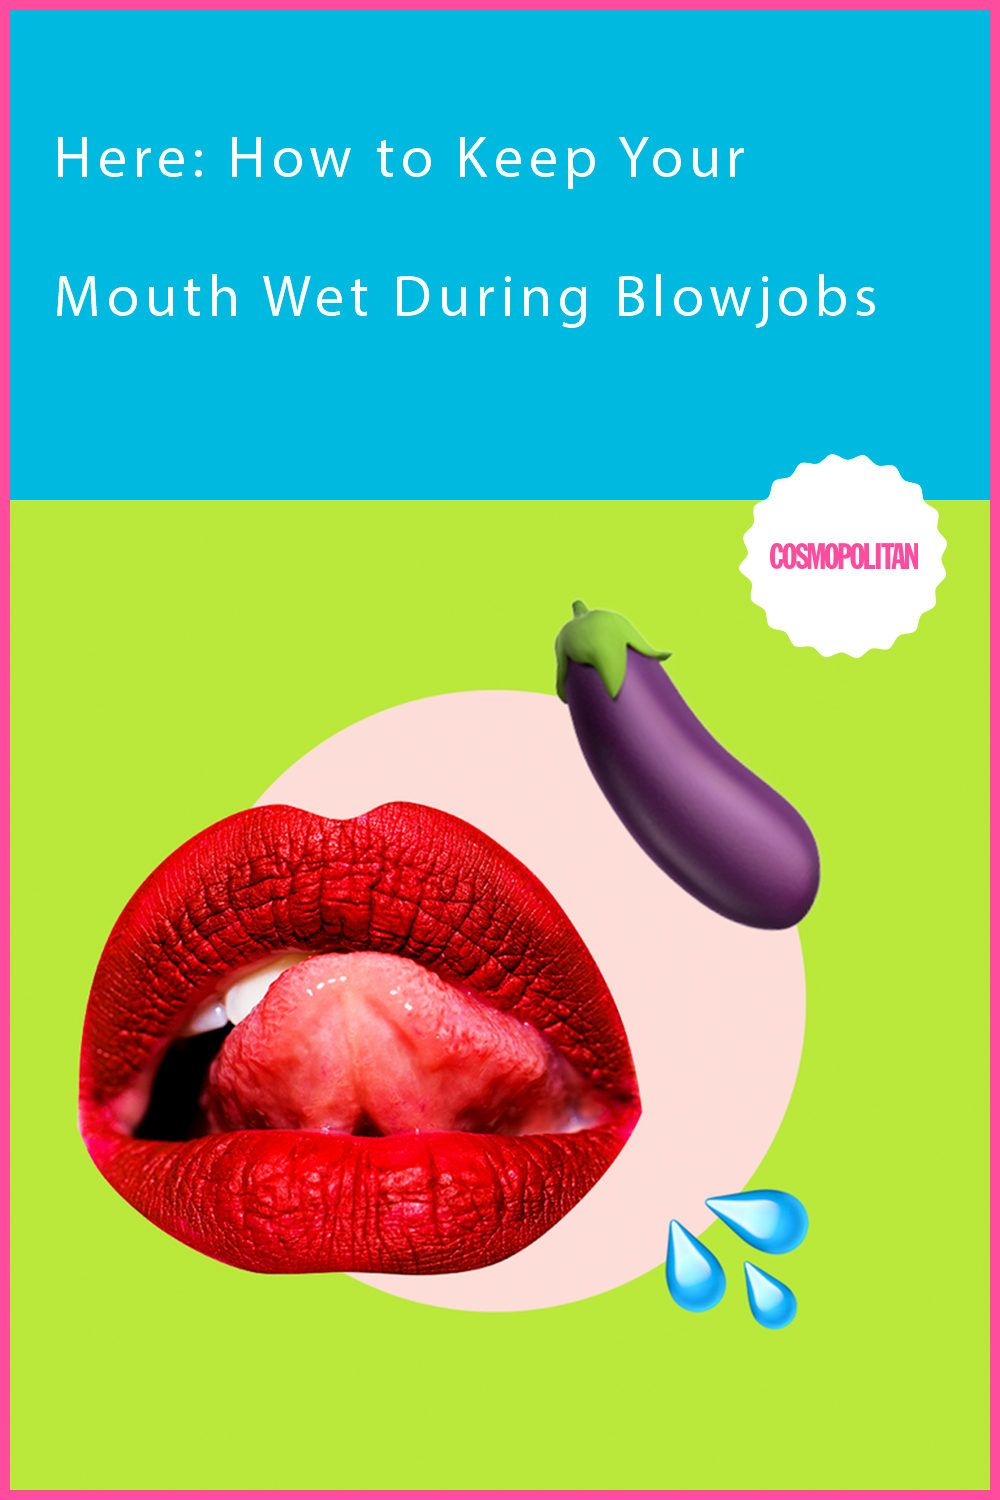 How Do You Keep Your Mouth Wet During Blowjobs?